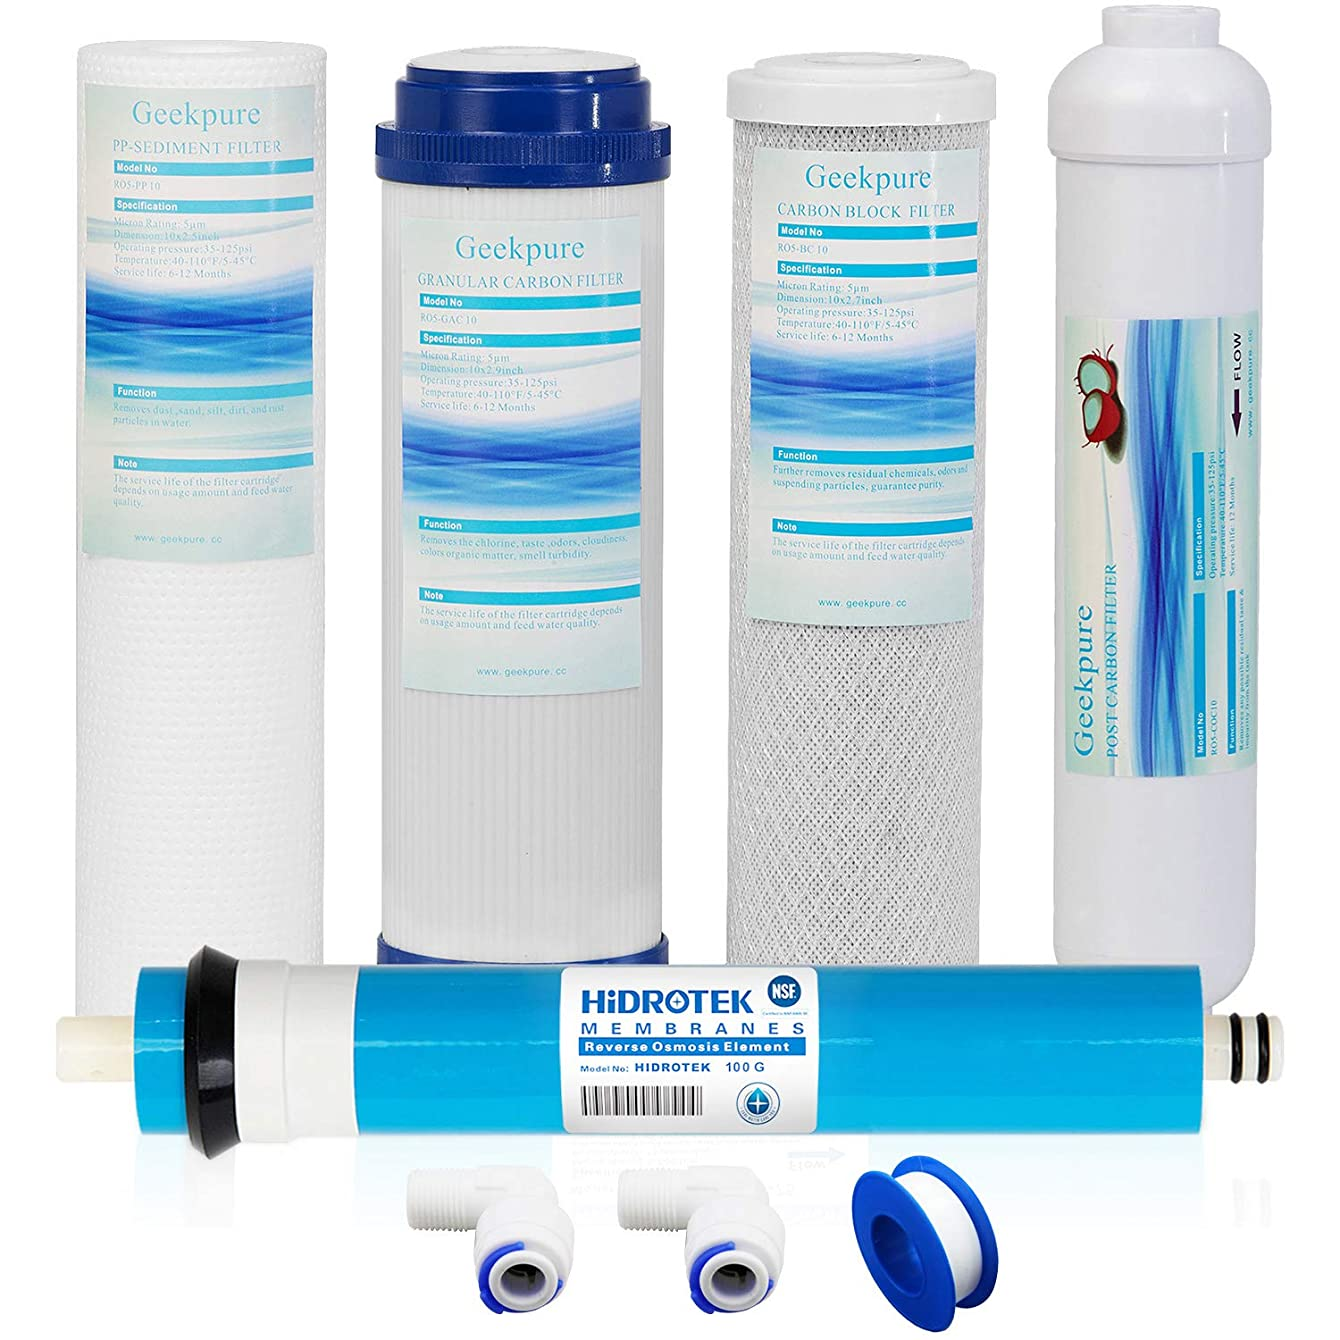 Universal Compatible 5 Stage Reverse Osmosis Replacement Filter Set with 100 GPD Membrane -Standard 10 Inch gnjemmqruczyo36